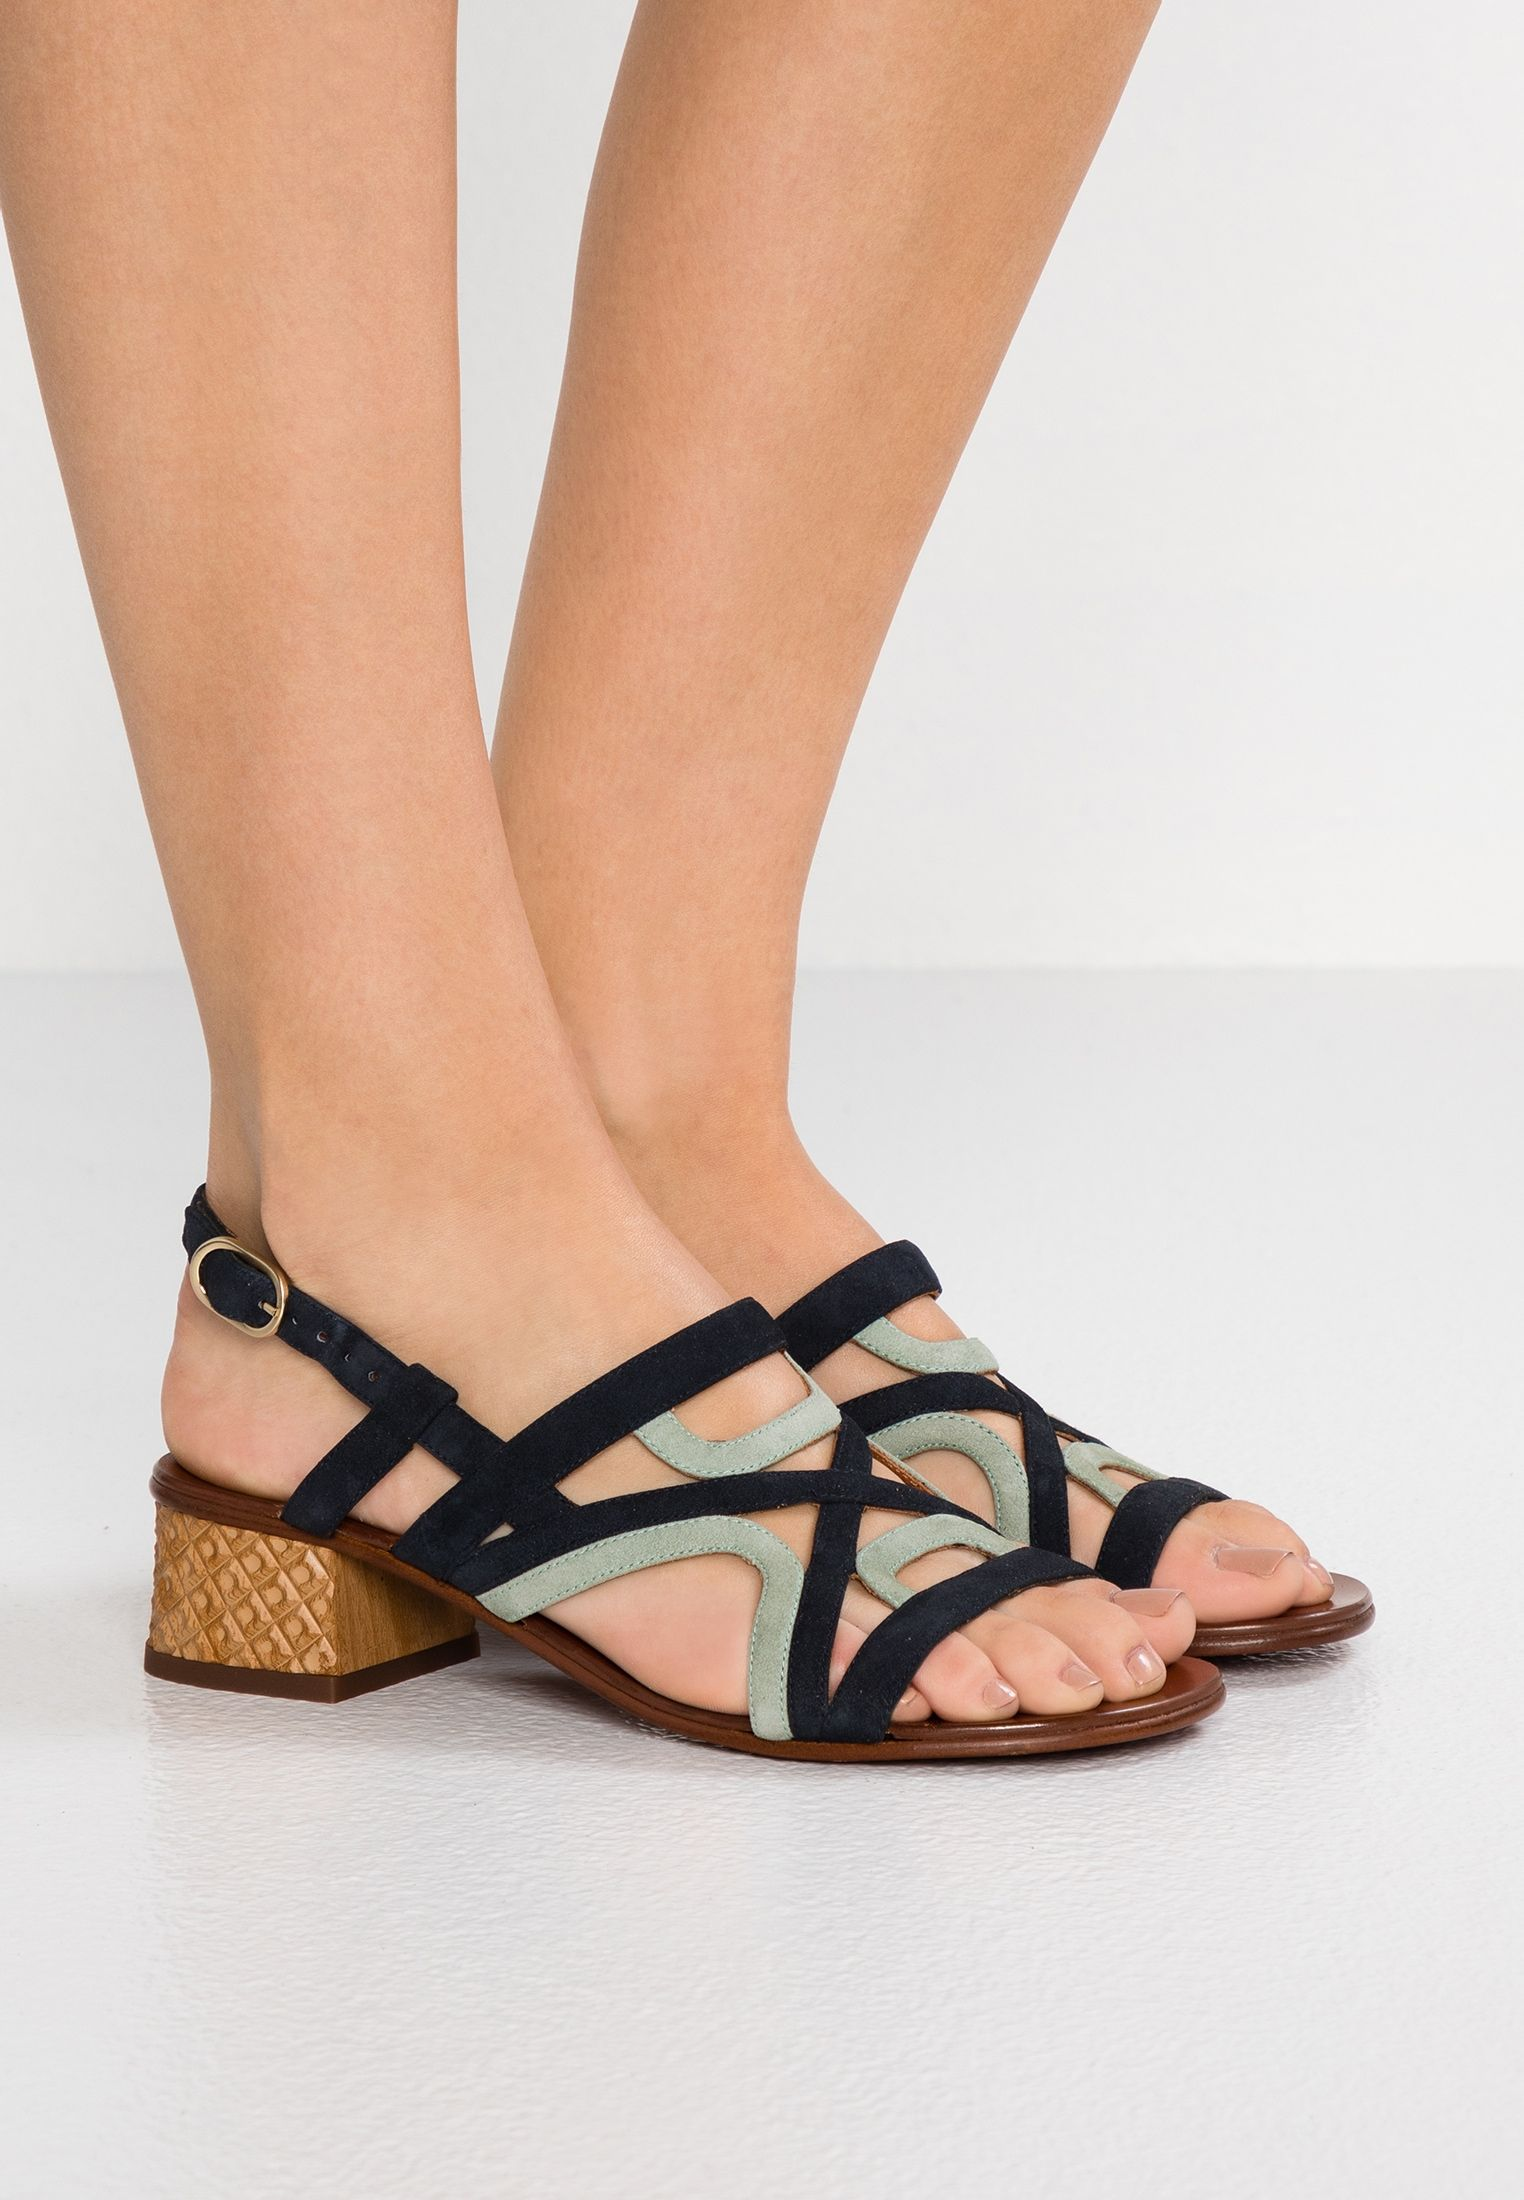 QUESADA Sandals pizarrasalvia @ Zalando.co.uk